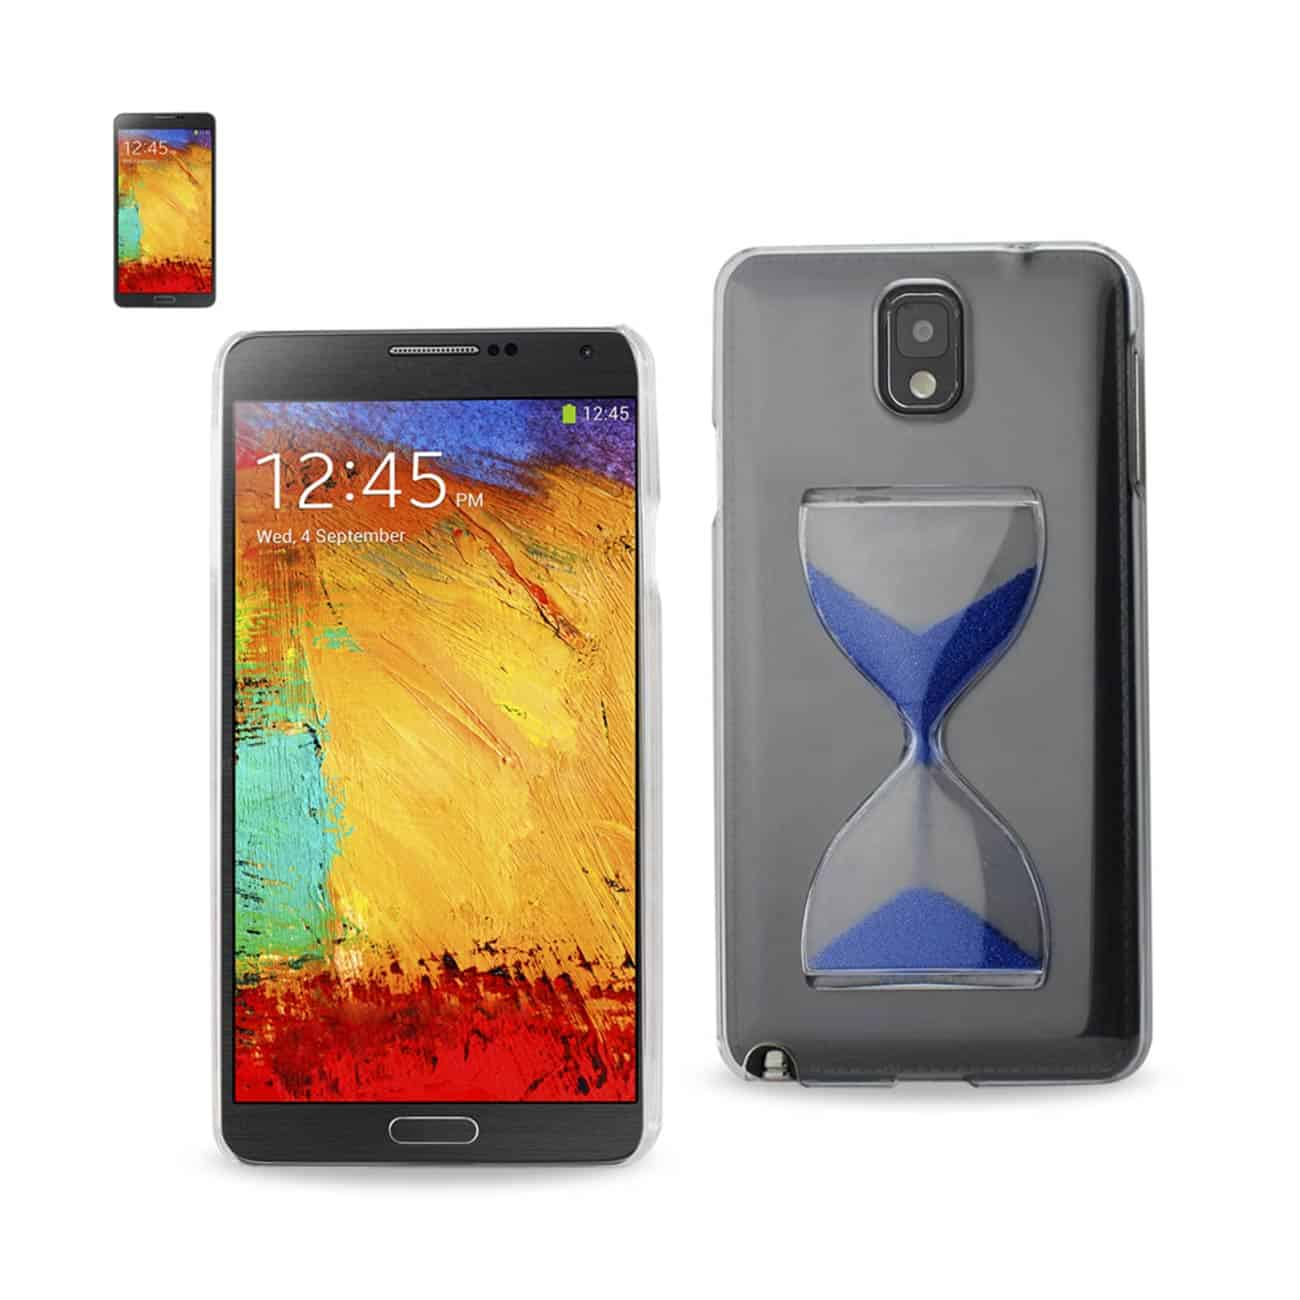 SAMSUNG GALAXY NOTE 3 3D SAND CLOCK CLEAR CASE IN NAVY